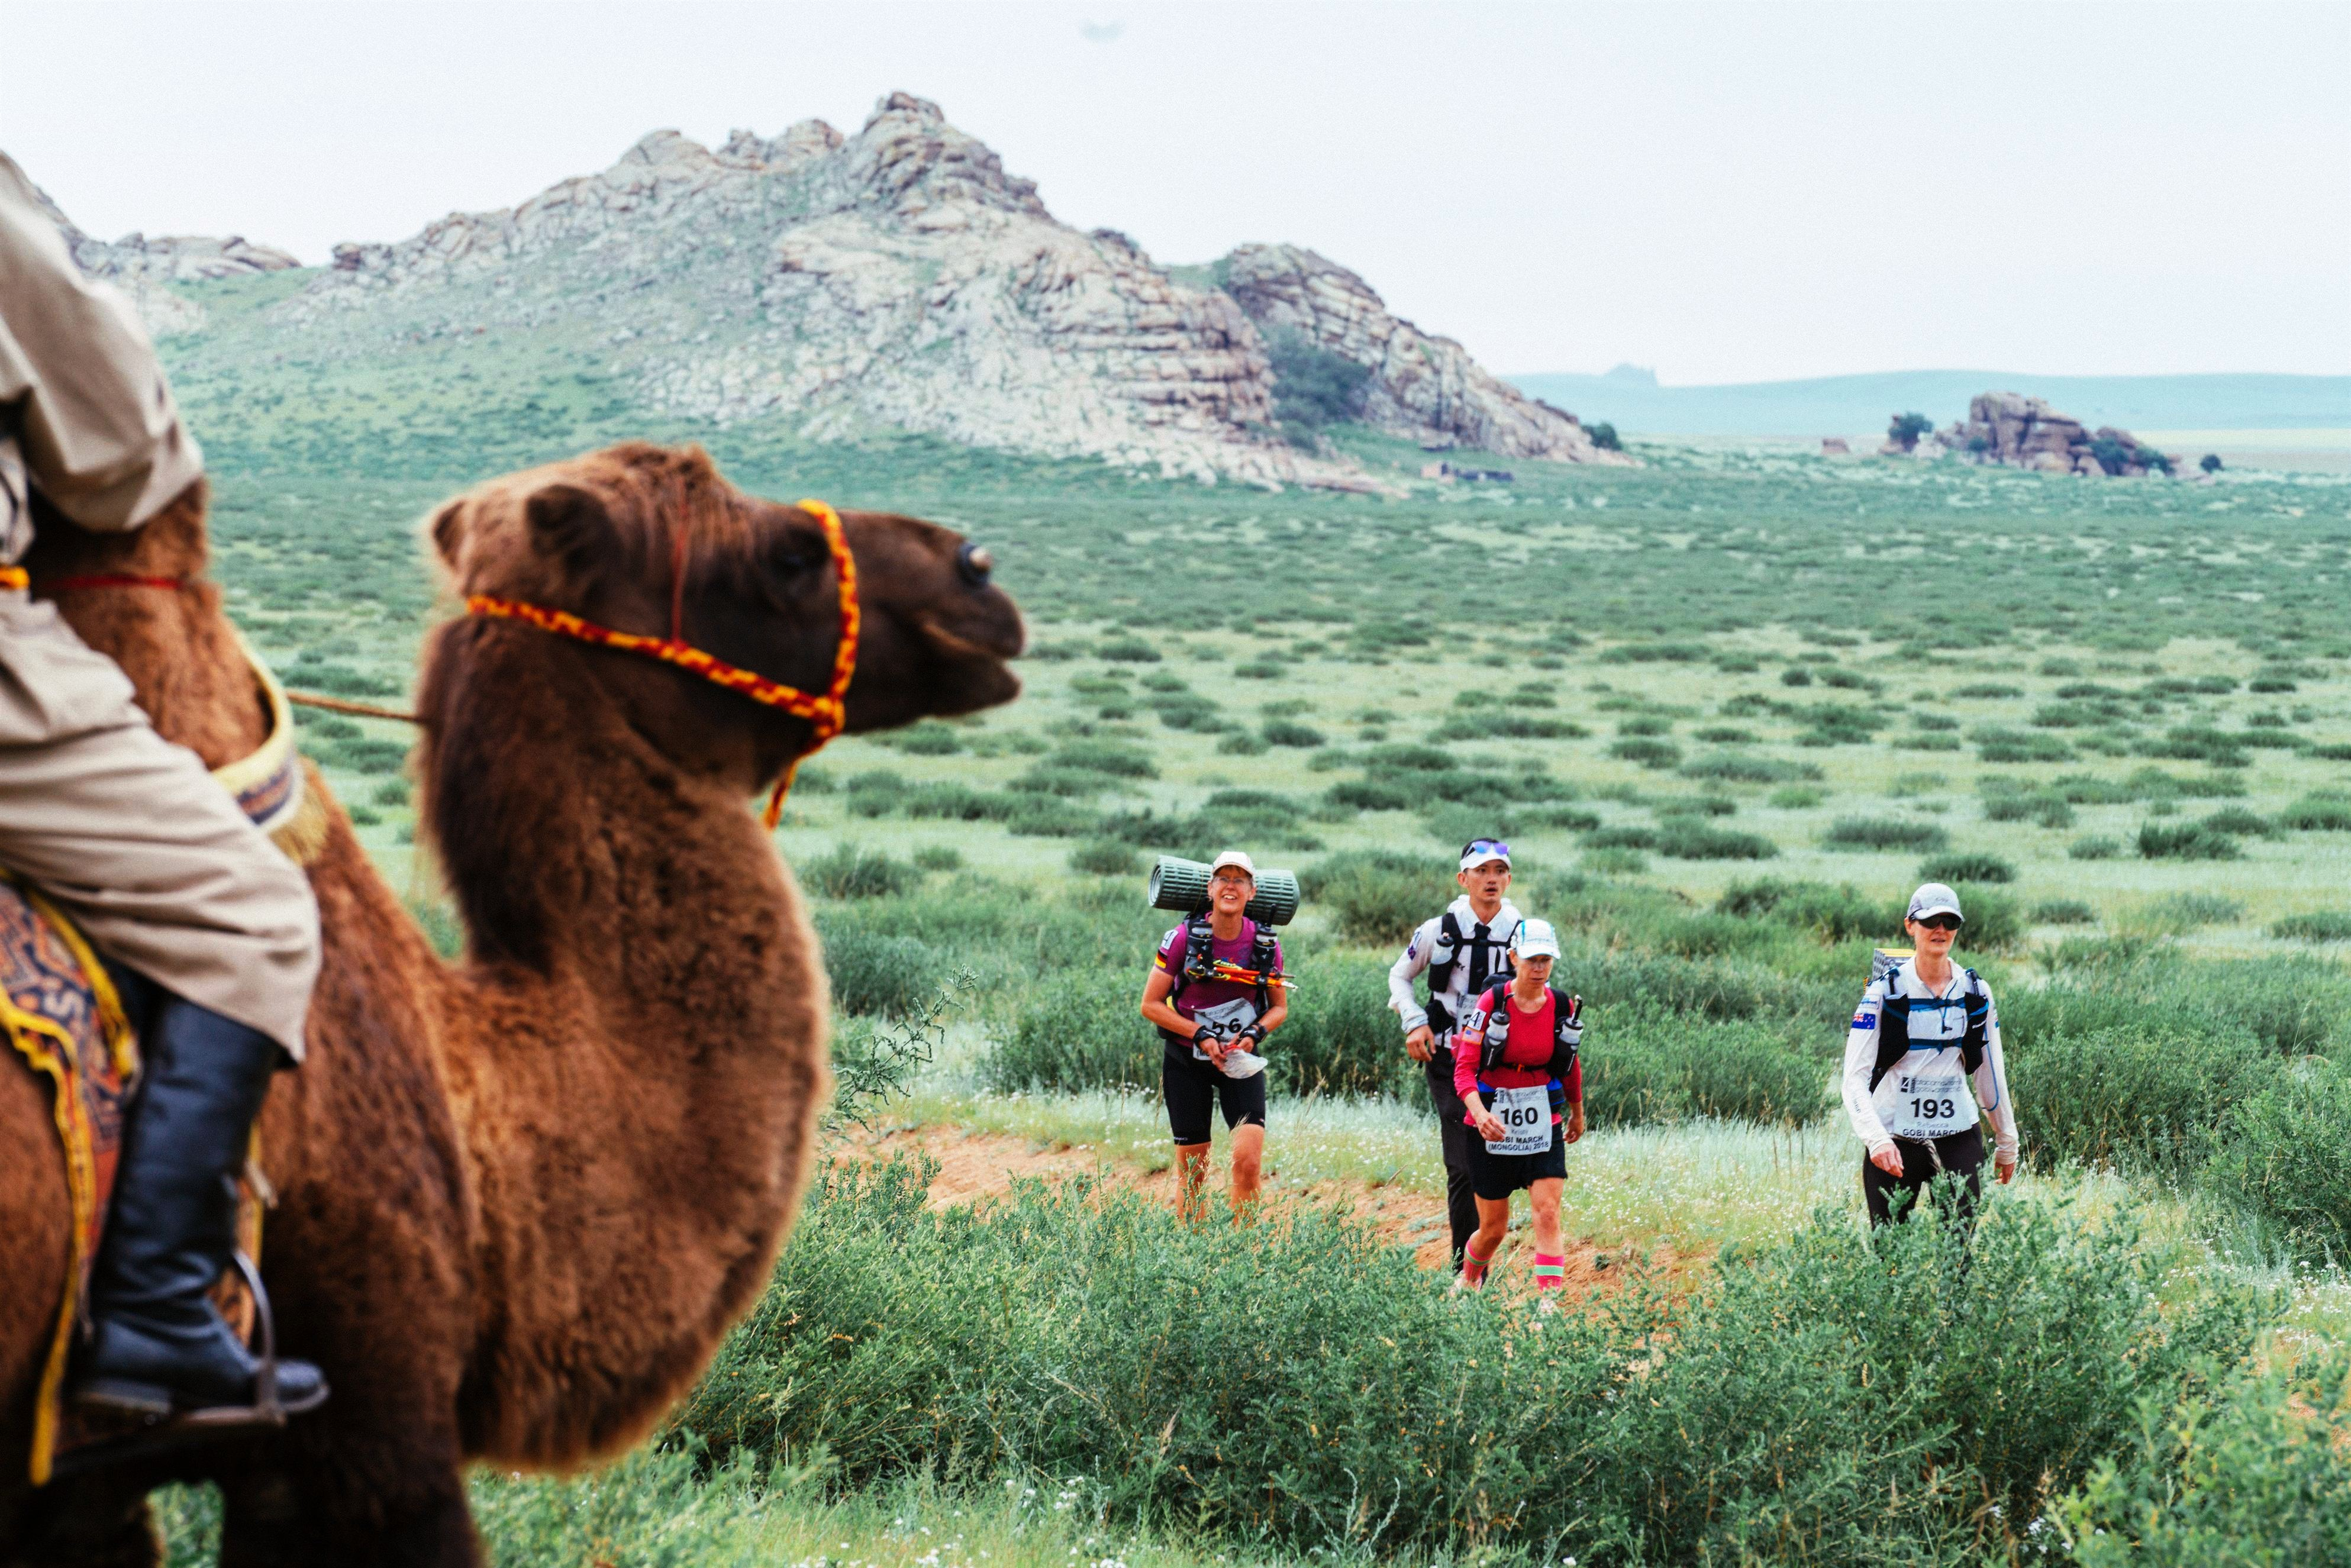 STAGE 3: Rebecca, Kristy, Olle and a Camel